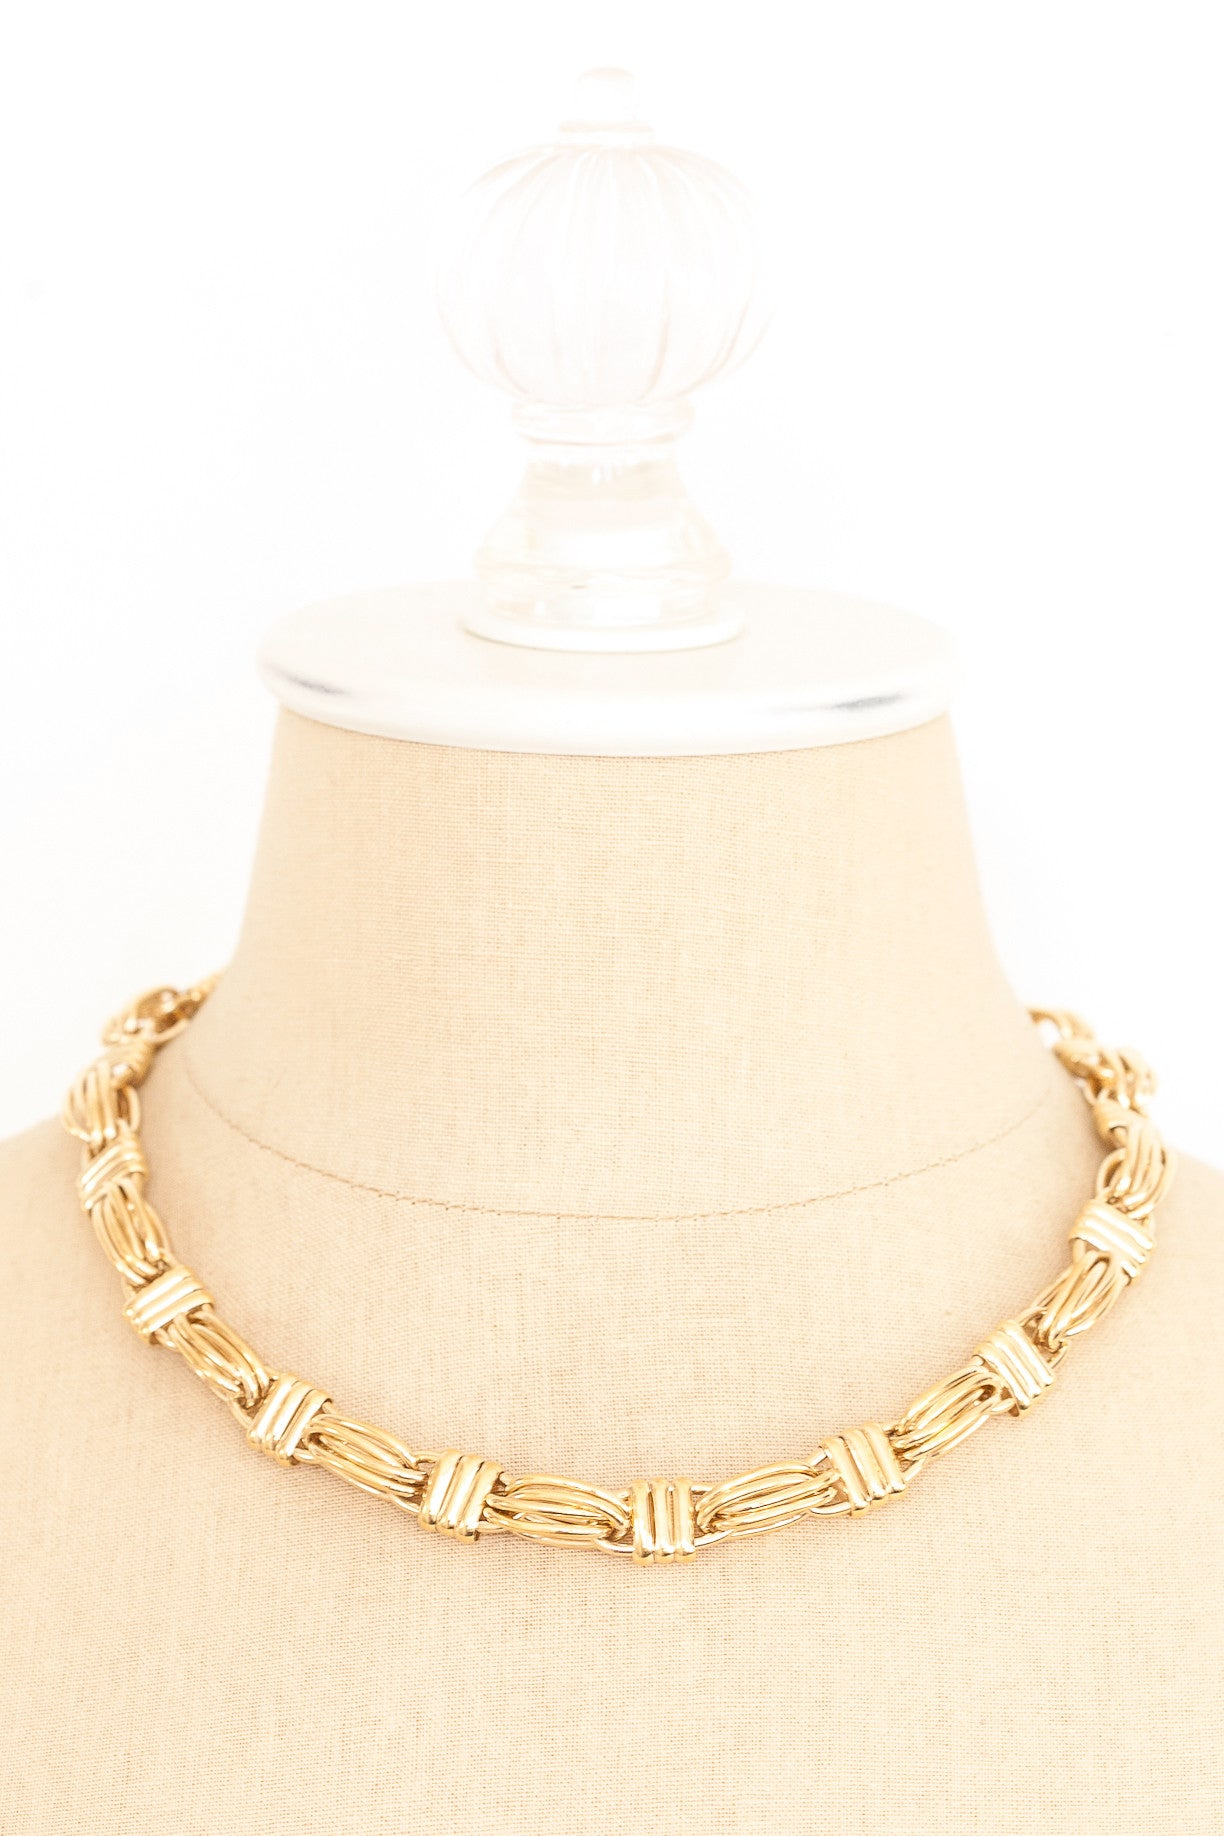 80's__Givenchy__Chunky Link Necklace